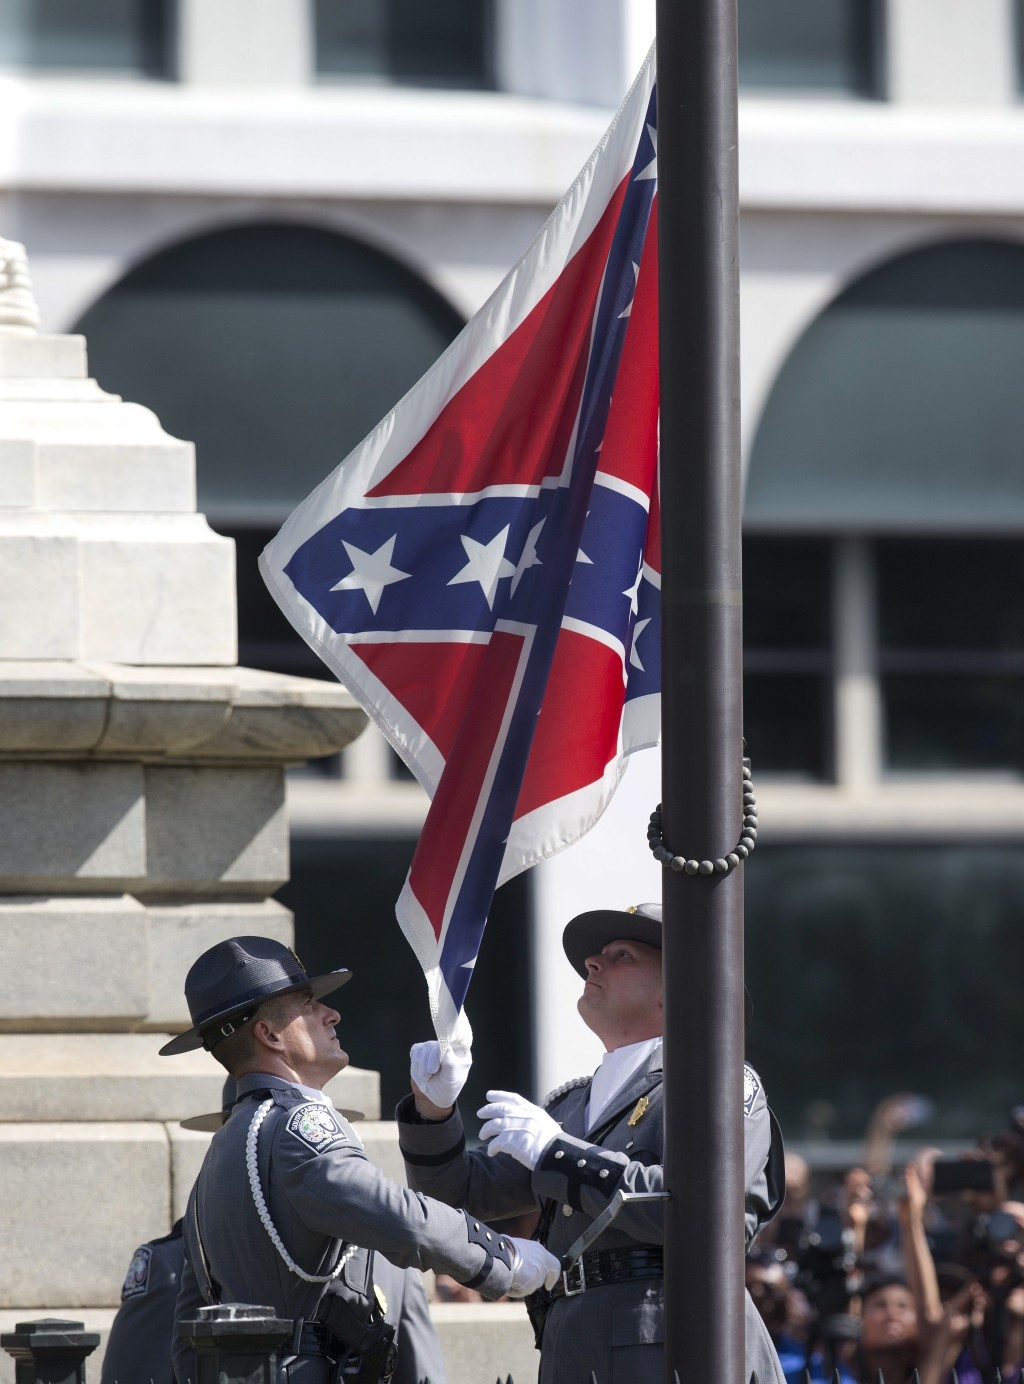 FILE - In a Friday, July 10, 2015 file photo, an honor guard from the South Carolina Highway patrol removes the Confederate battle flag from the Capit...